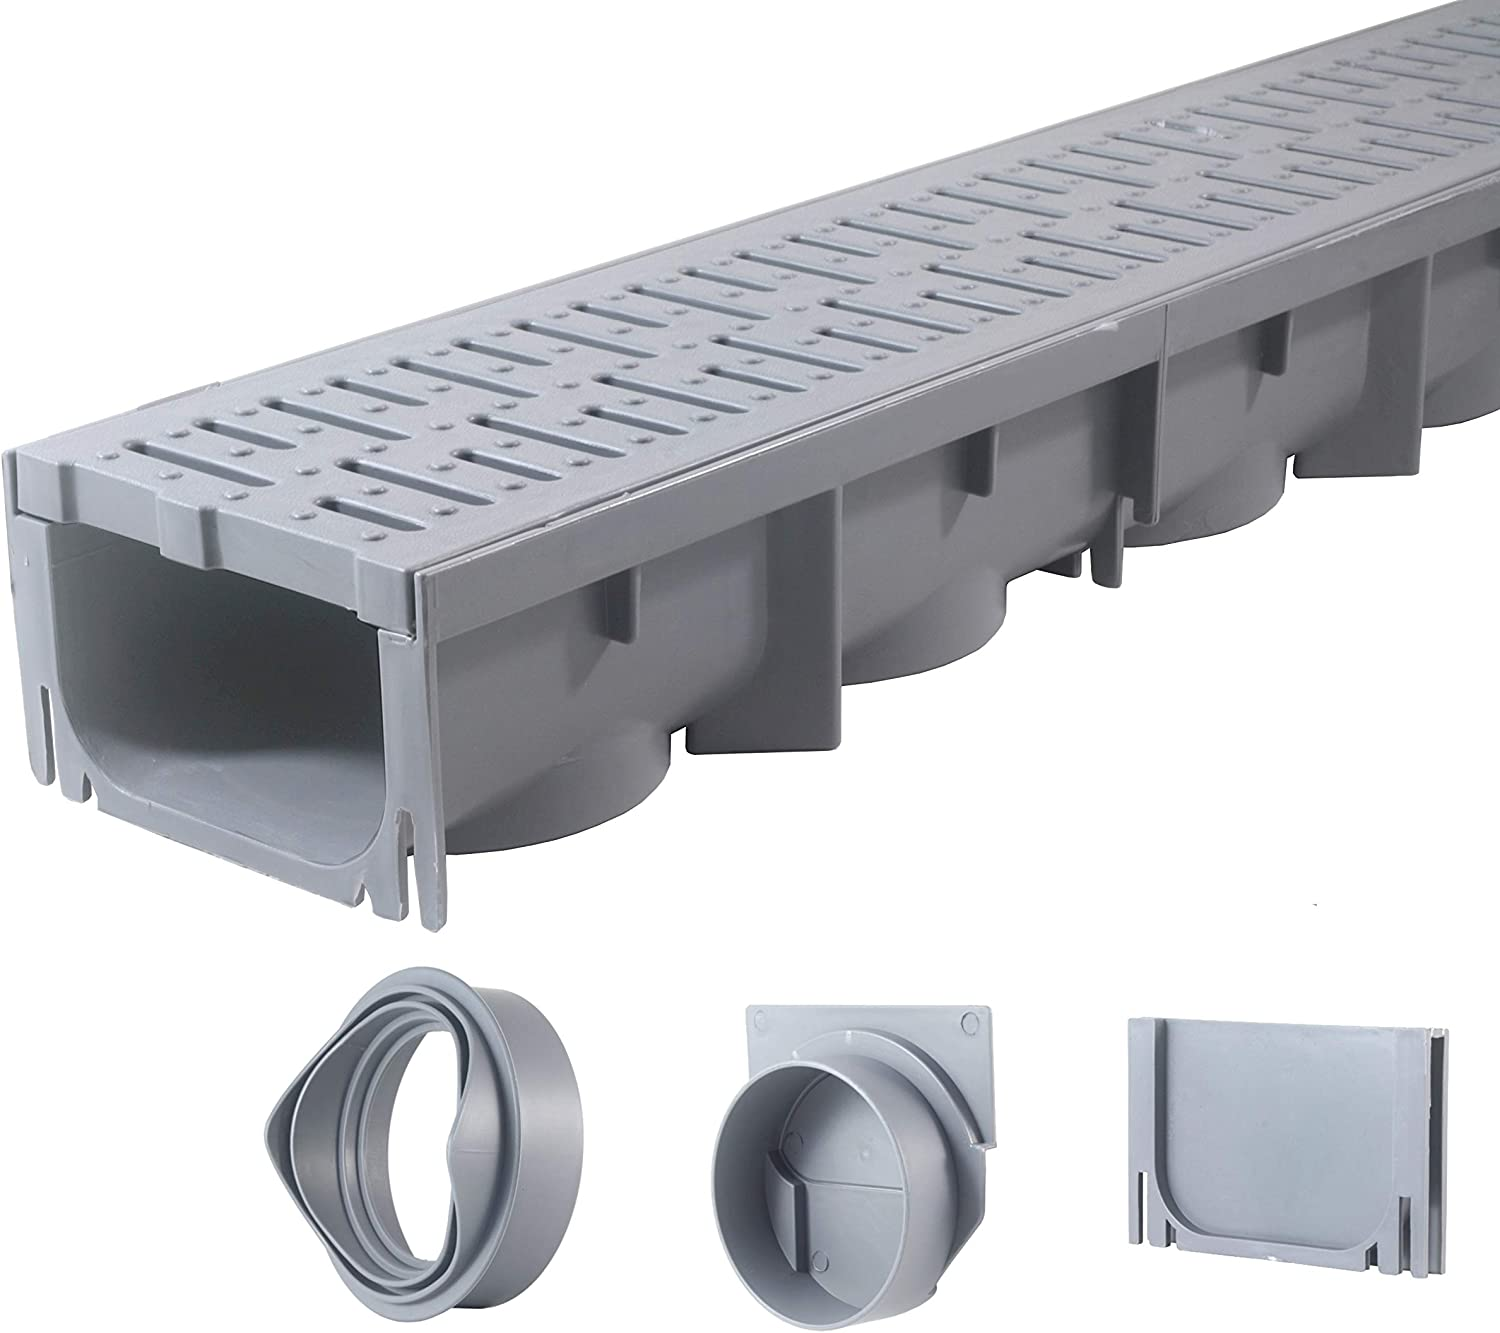 "Drainage Trench - Channel Drain With Grate - Gray Plastic - 39"" Long"